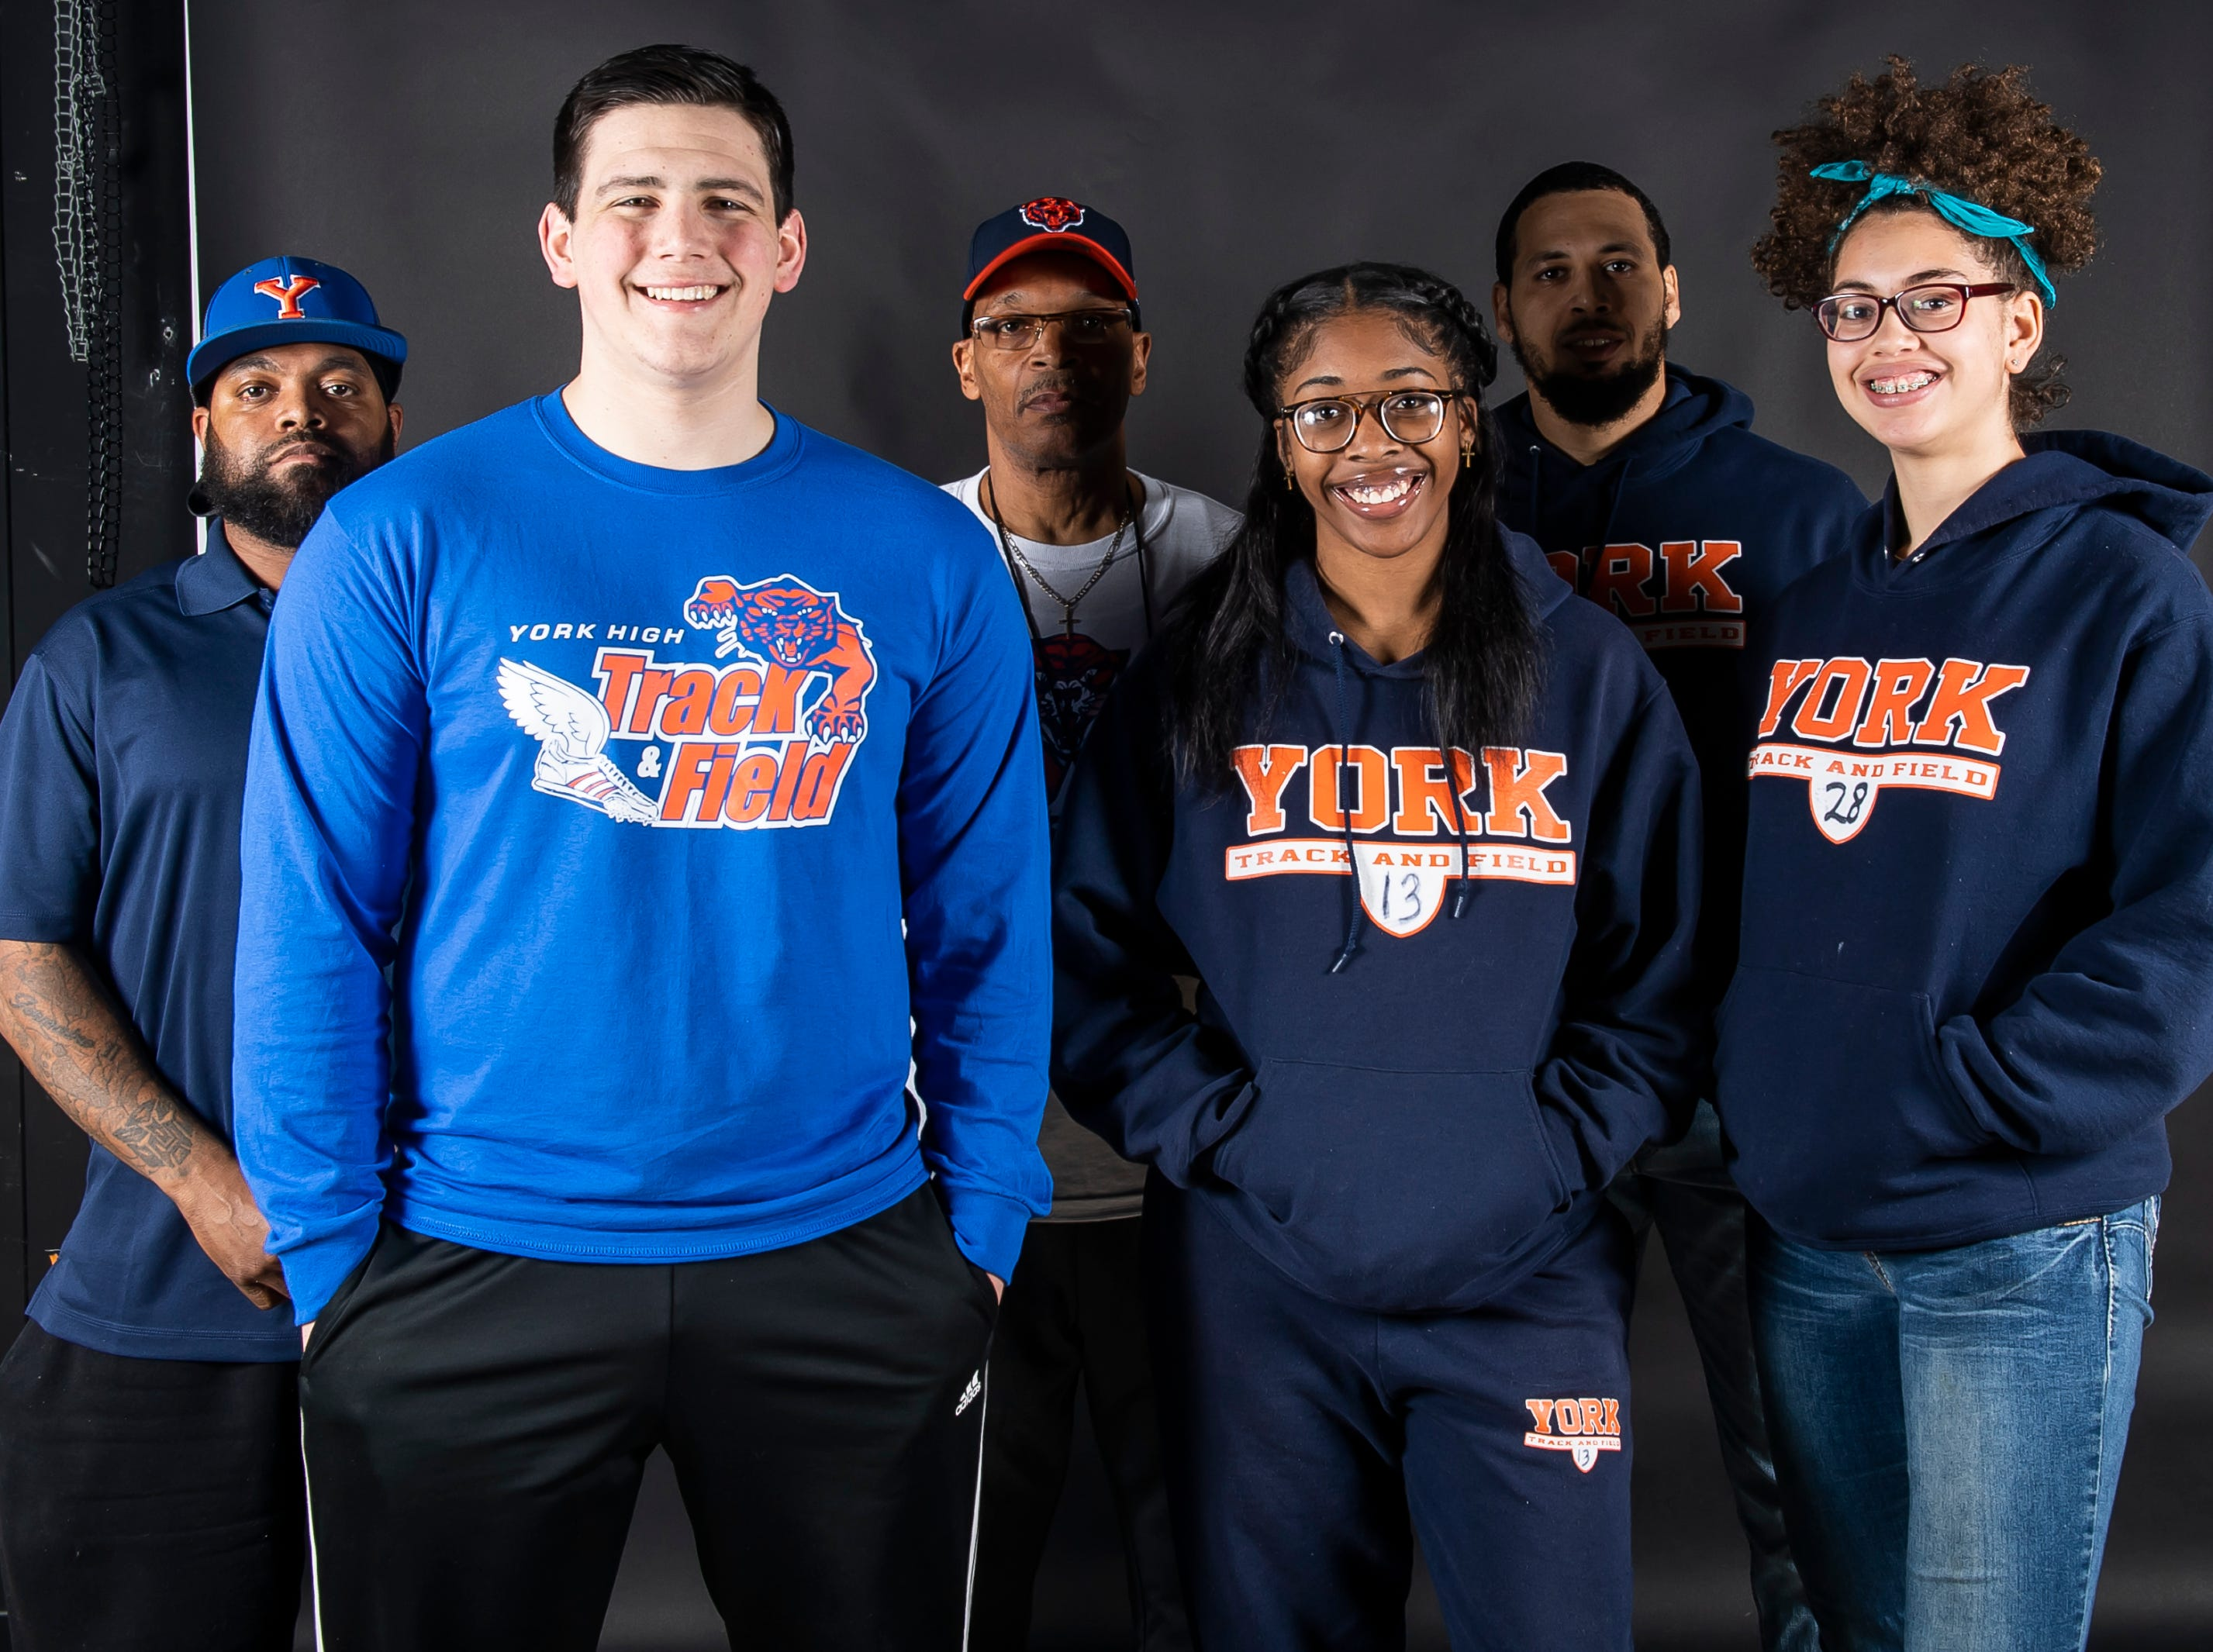 (From back left) York High track and field's coach Jermaine Bailey, coach Tony Jones, coach Andrew Lehigh, Trey Bernstein, Victoria Jean-Baptiste and Janelle Soussa pose in the GameTimePA photo booth during spring sports media day in York Sunday, March 10, 2019.